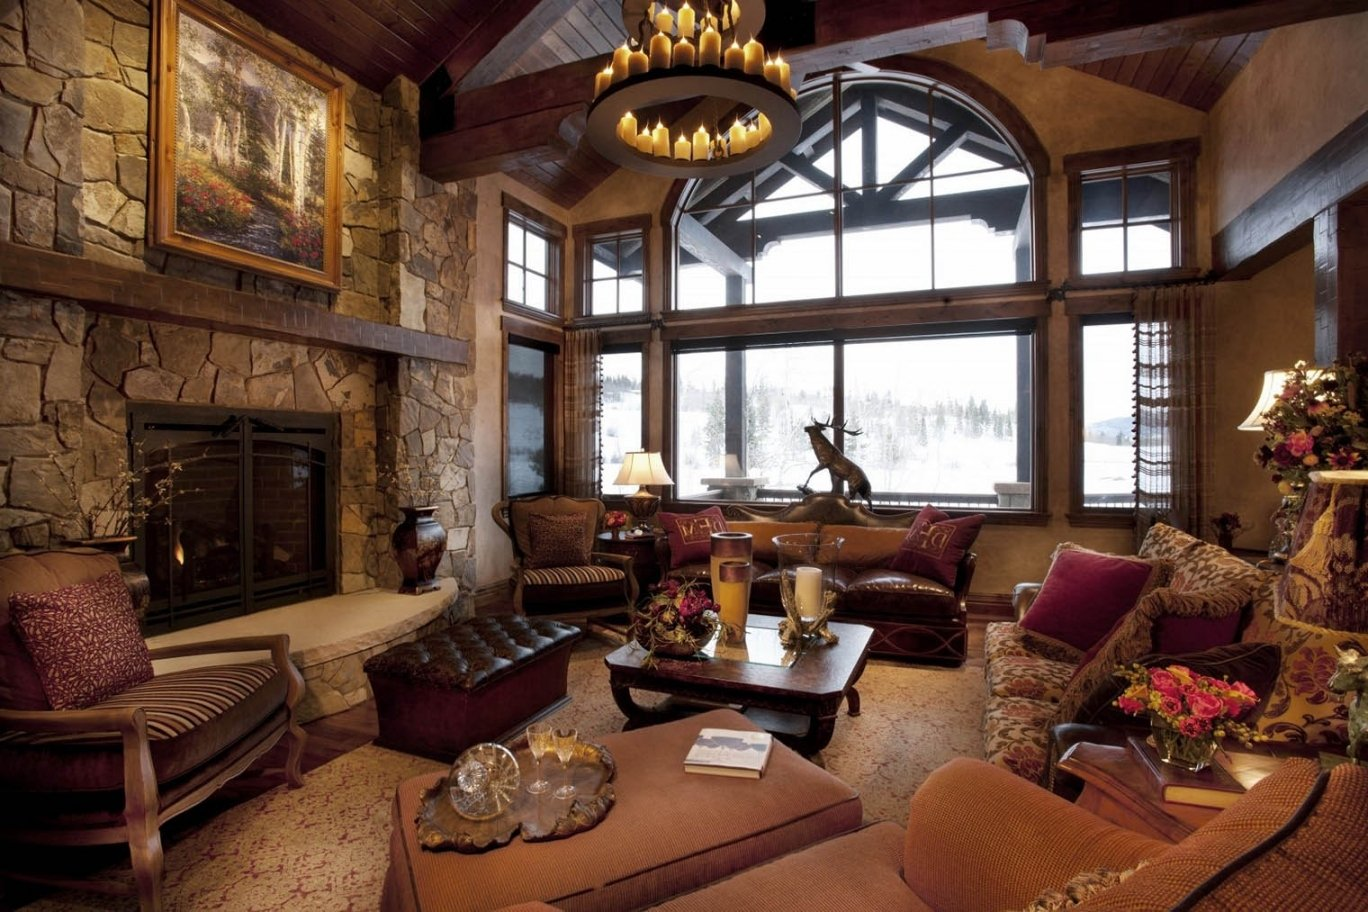 Chalet styled house interior with huge windows and candlesticks in the medieval chandelier